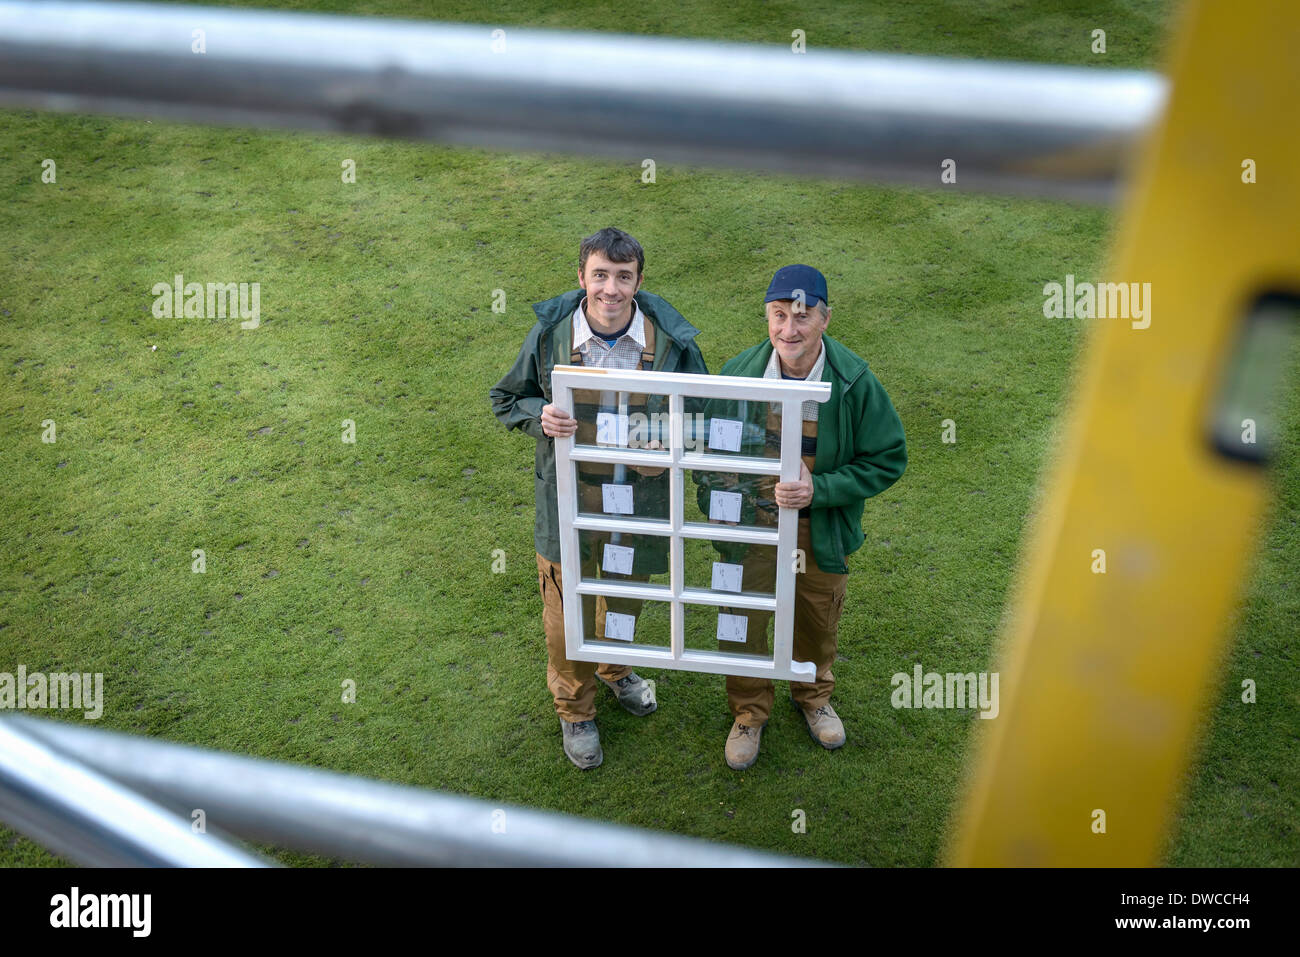 Portrait of father and son builders holding new window, high angle view - Stock Image